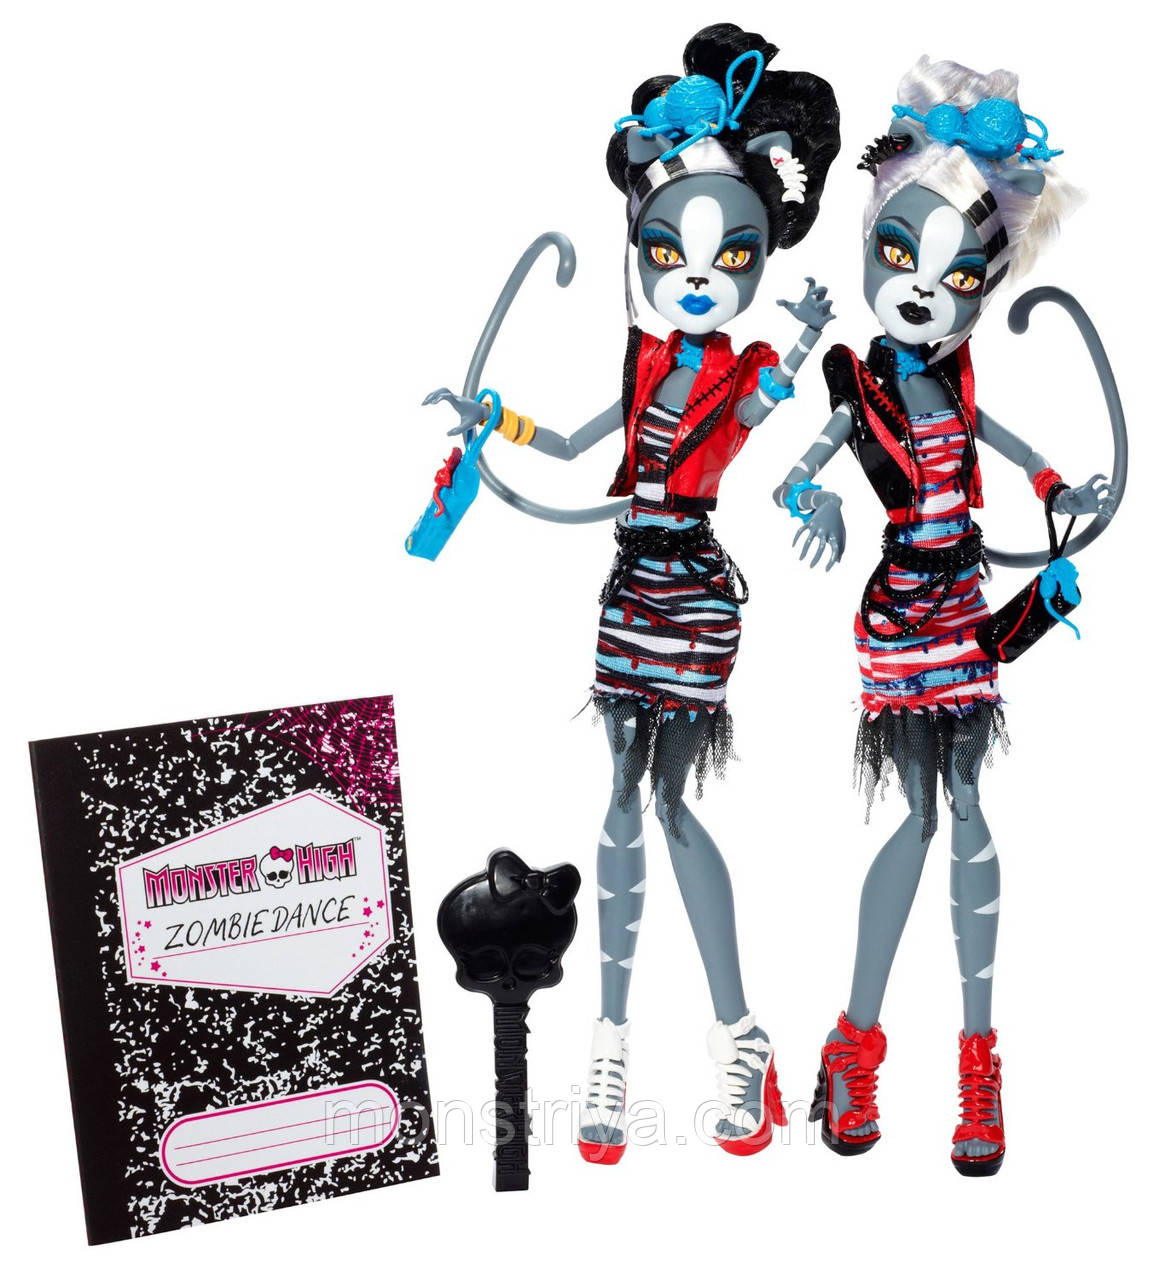 Набор кукол Мяулодия и Мурсифона,Monster High серия Зомби шейк